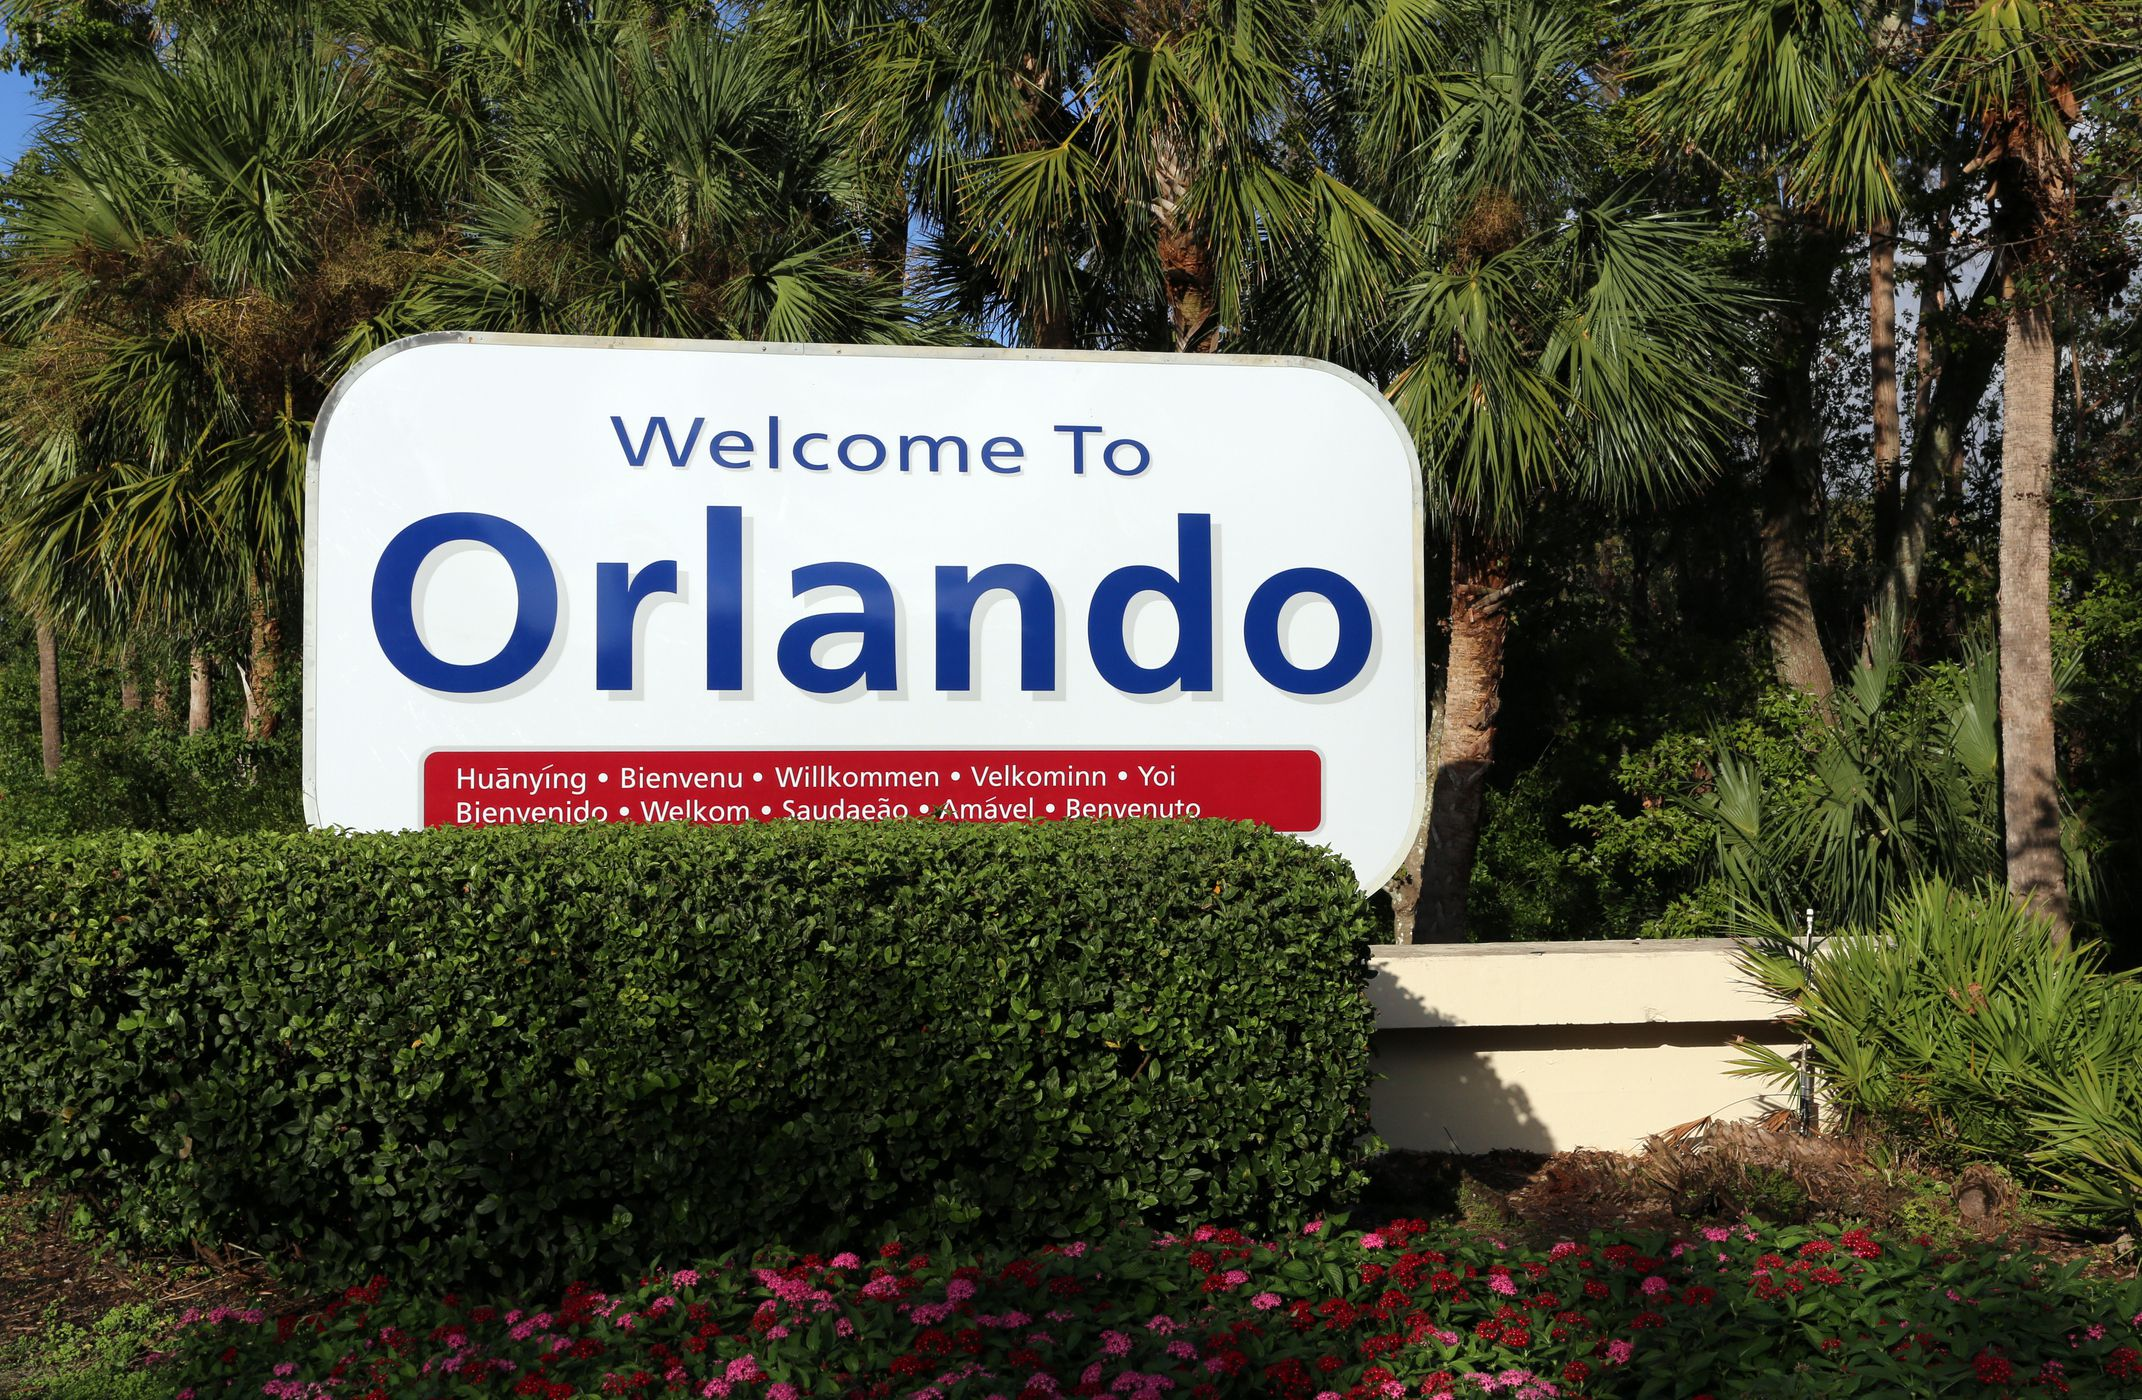 Orlando Travel: 7 Common Mistakes Made by Tourists